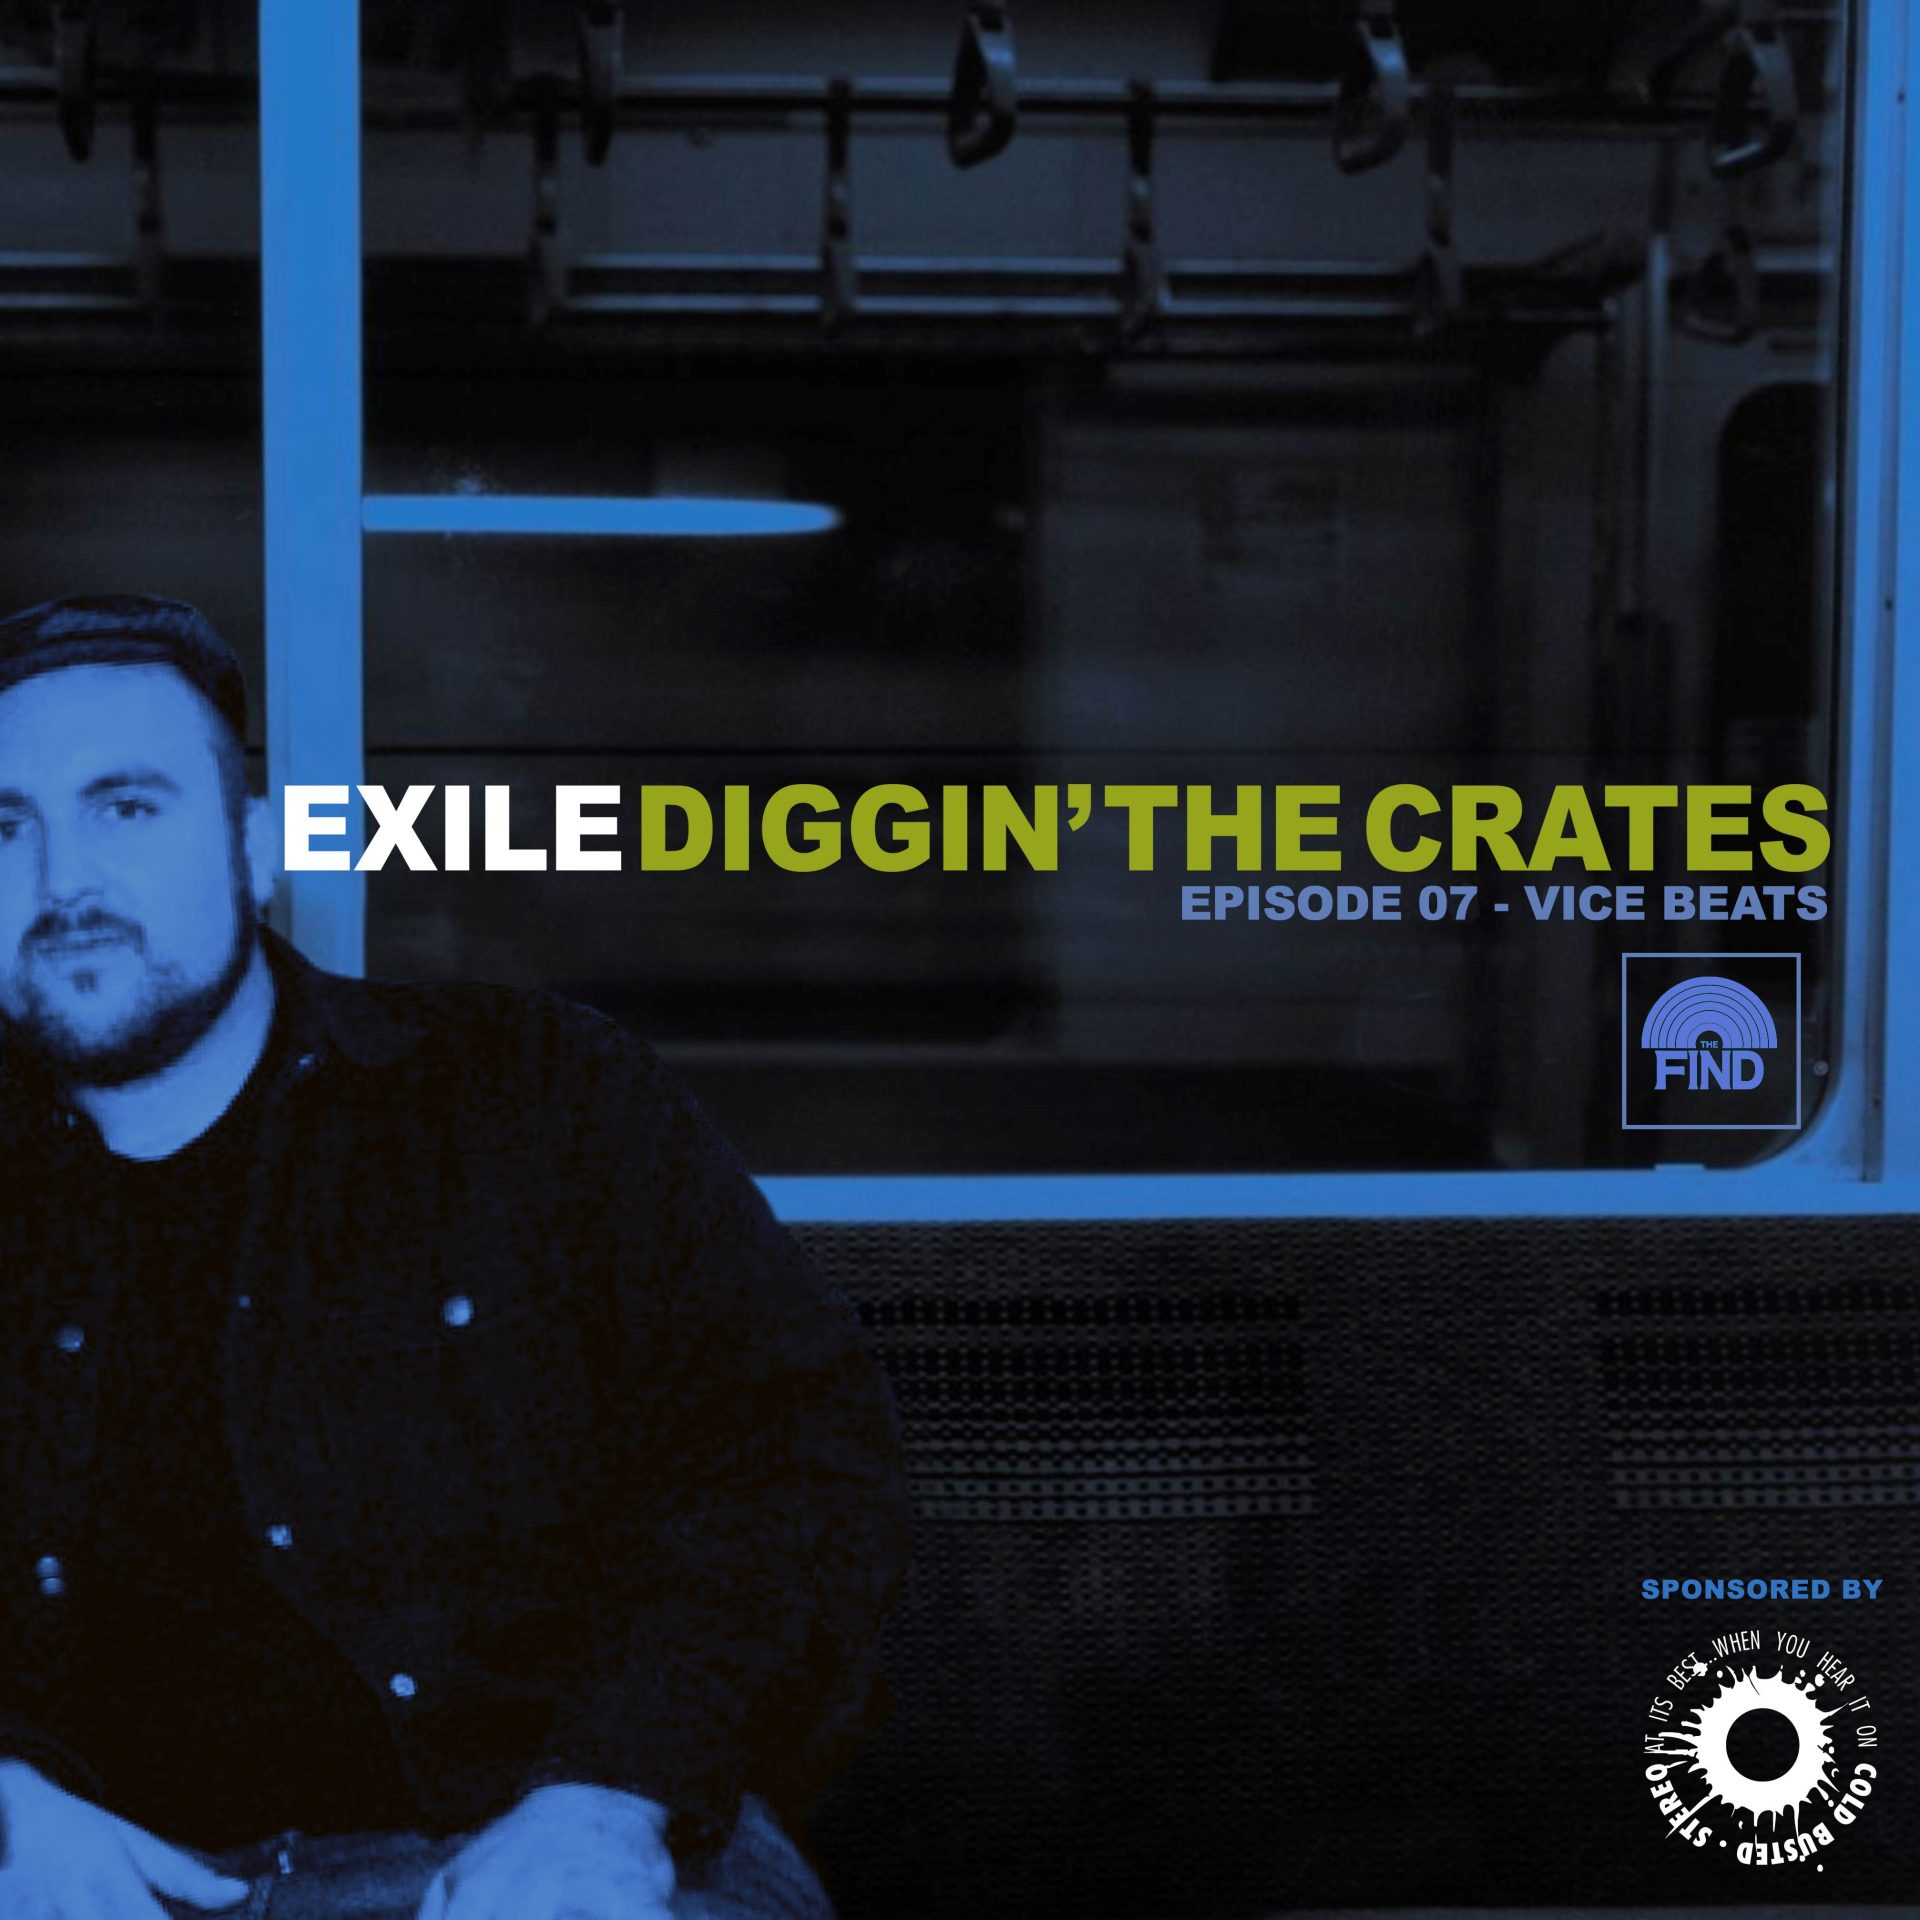 Season 2 Finale of our Diggin' The Crates podcast